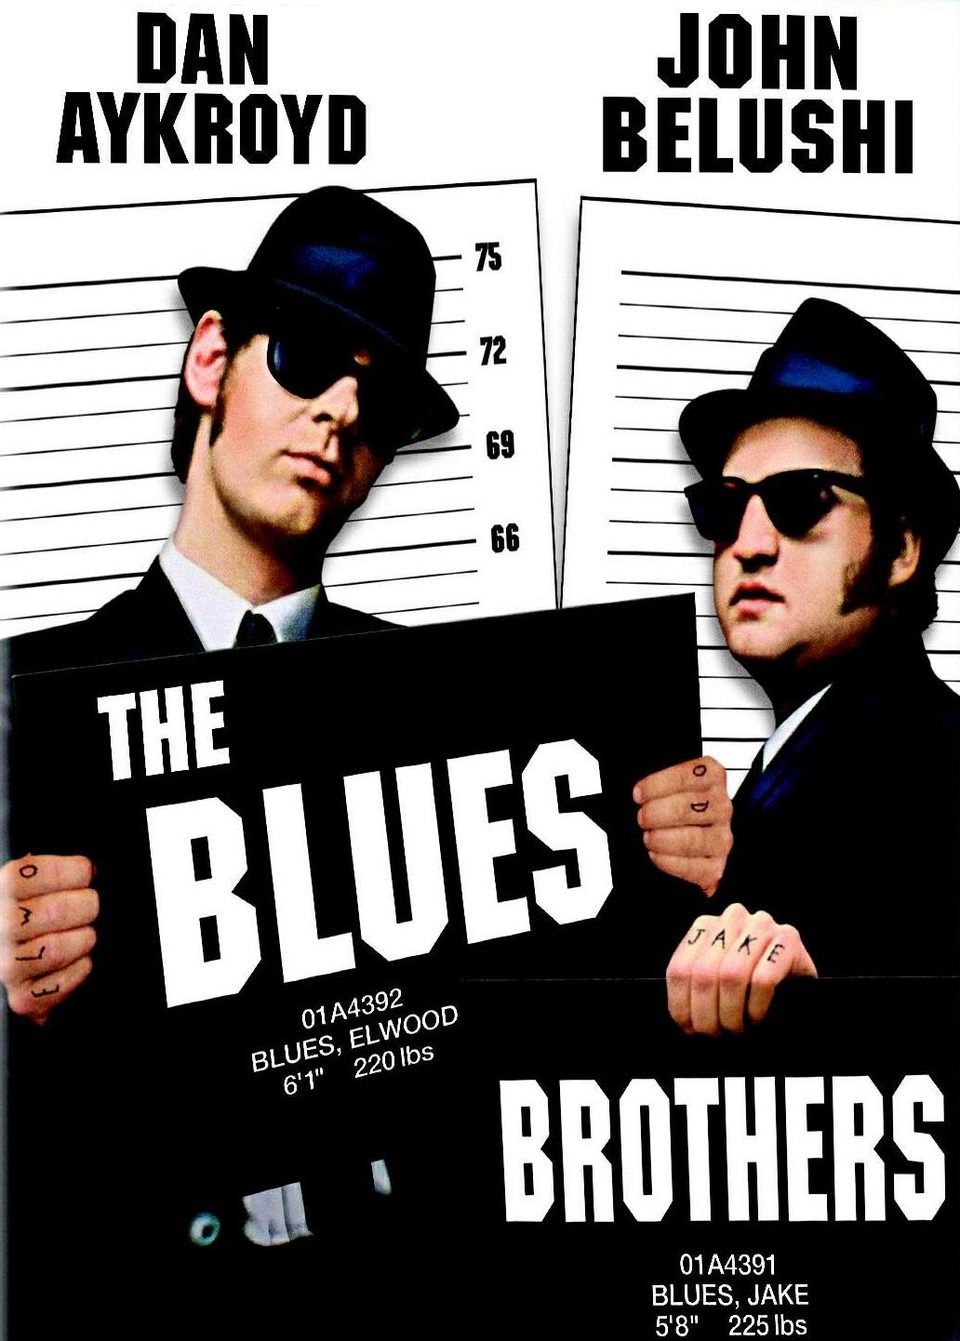 Estaodos Unidos poster for The Blues Brothers